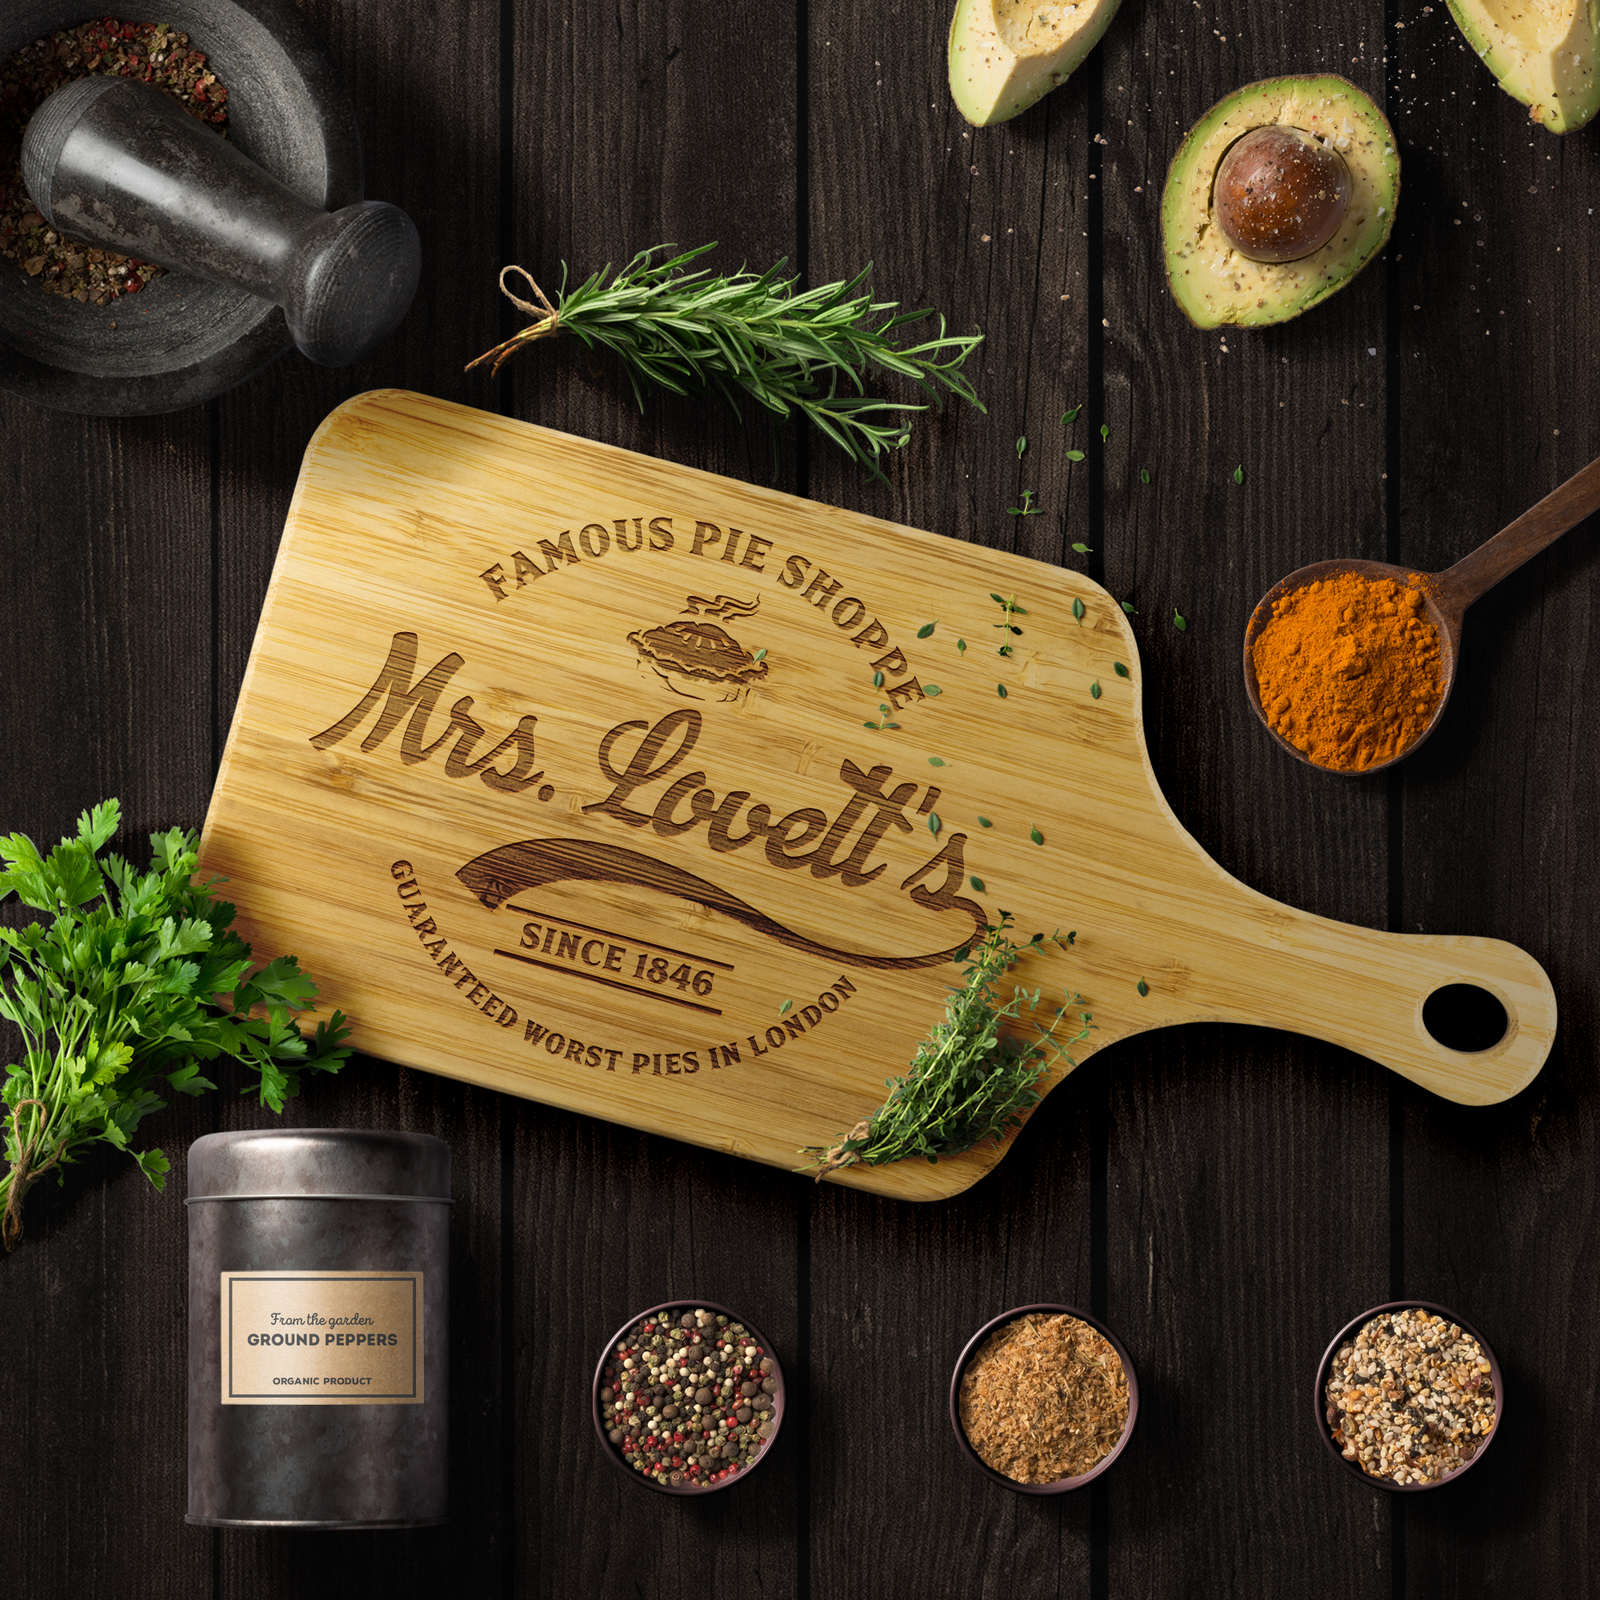 Rectangle wood cutting board with a handle and laser engraved logo for Mrs. Lovett's famous pie shoppe